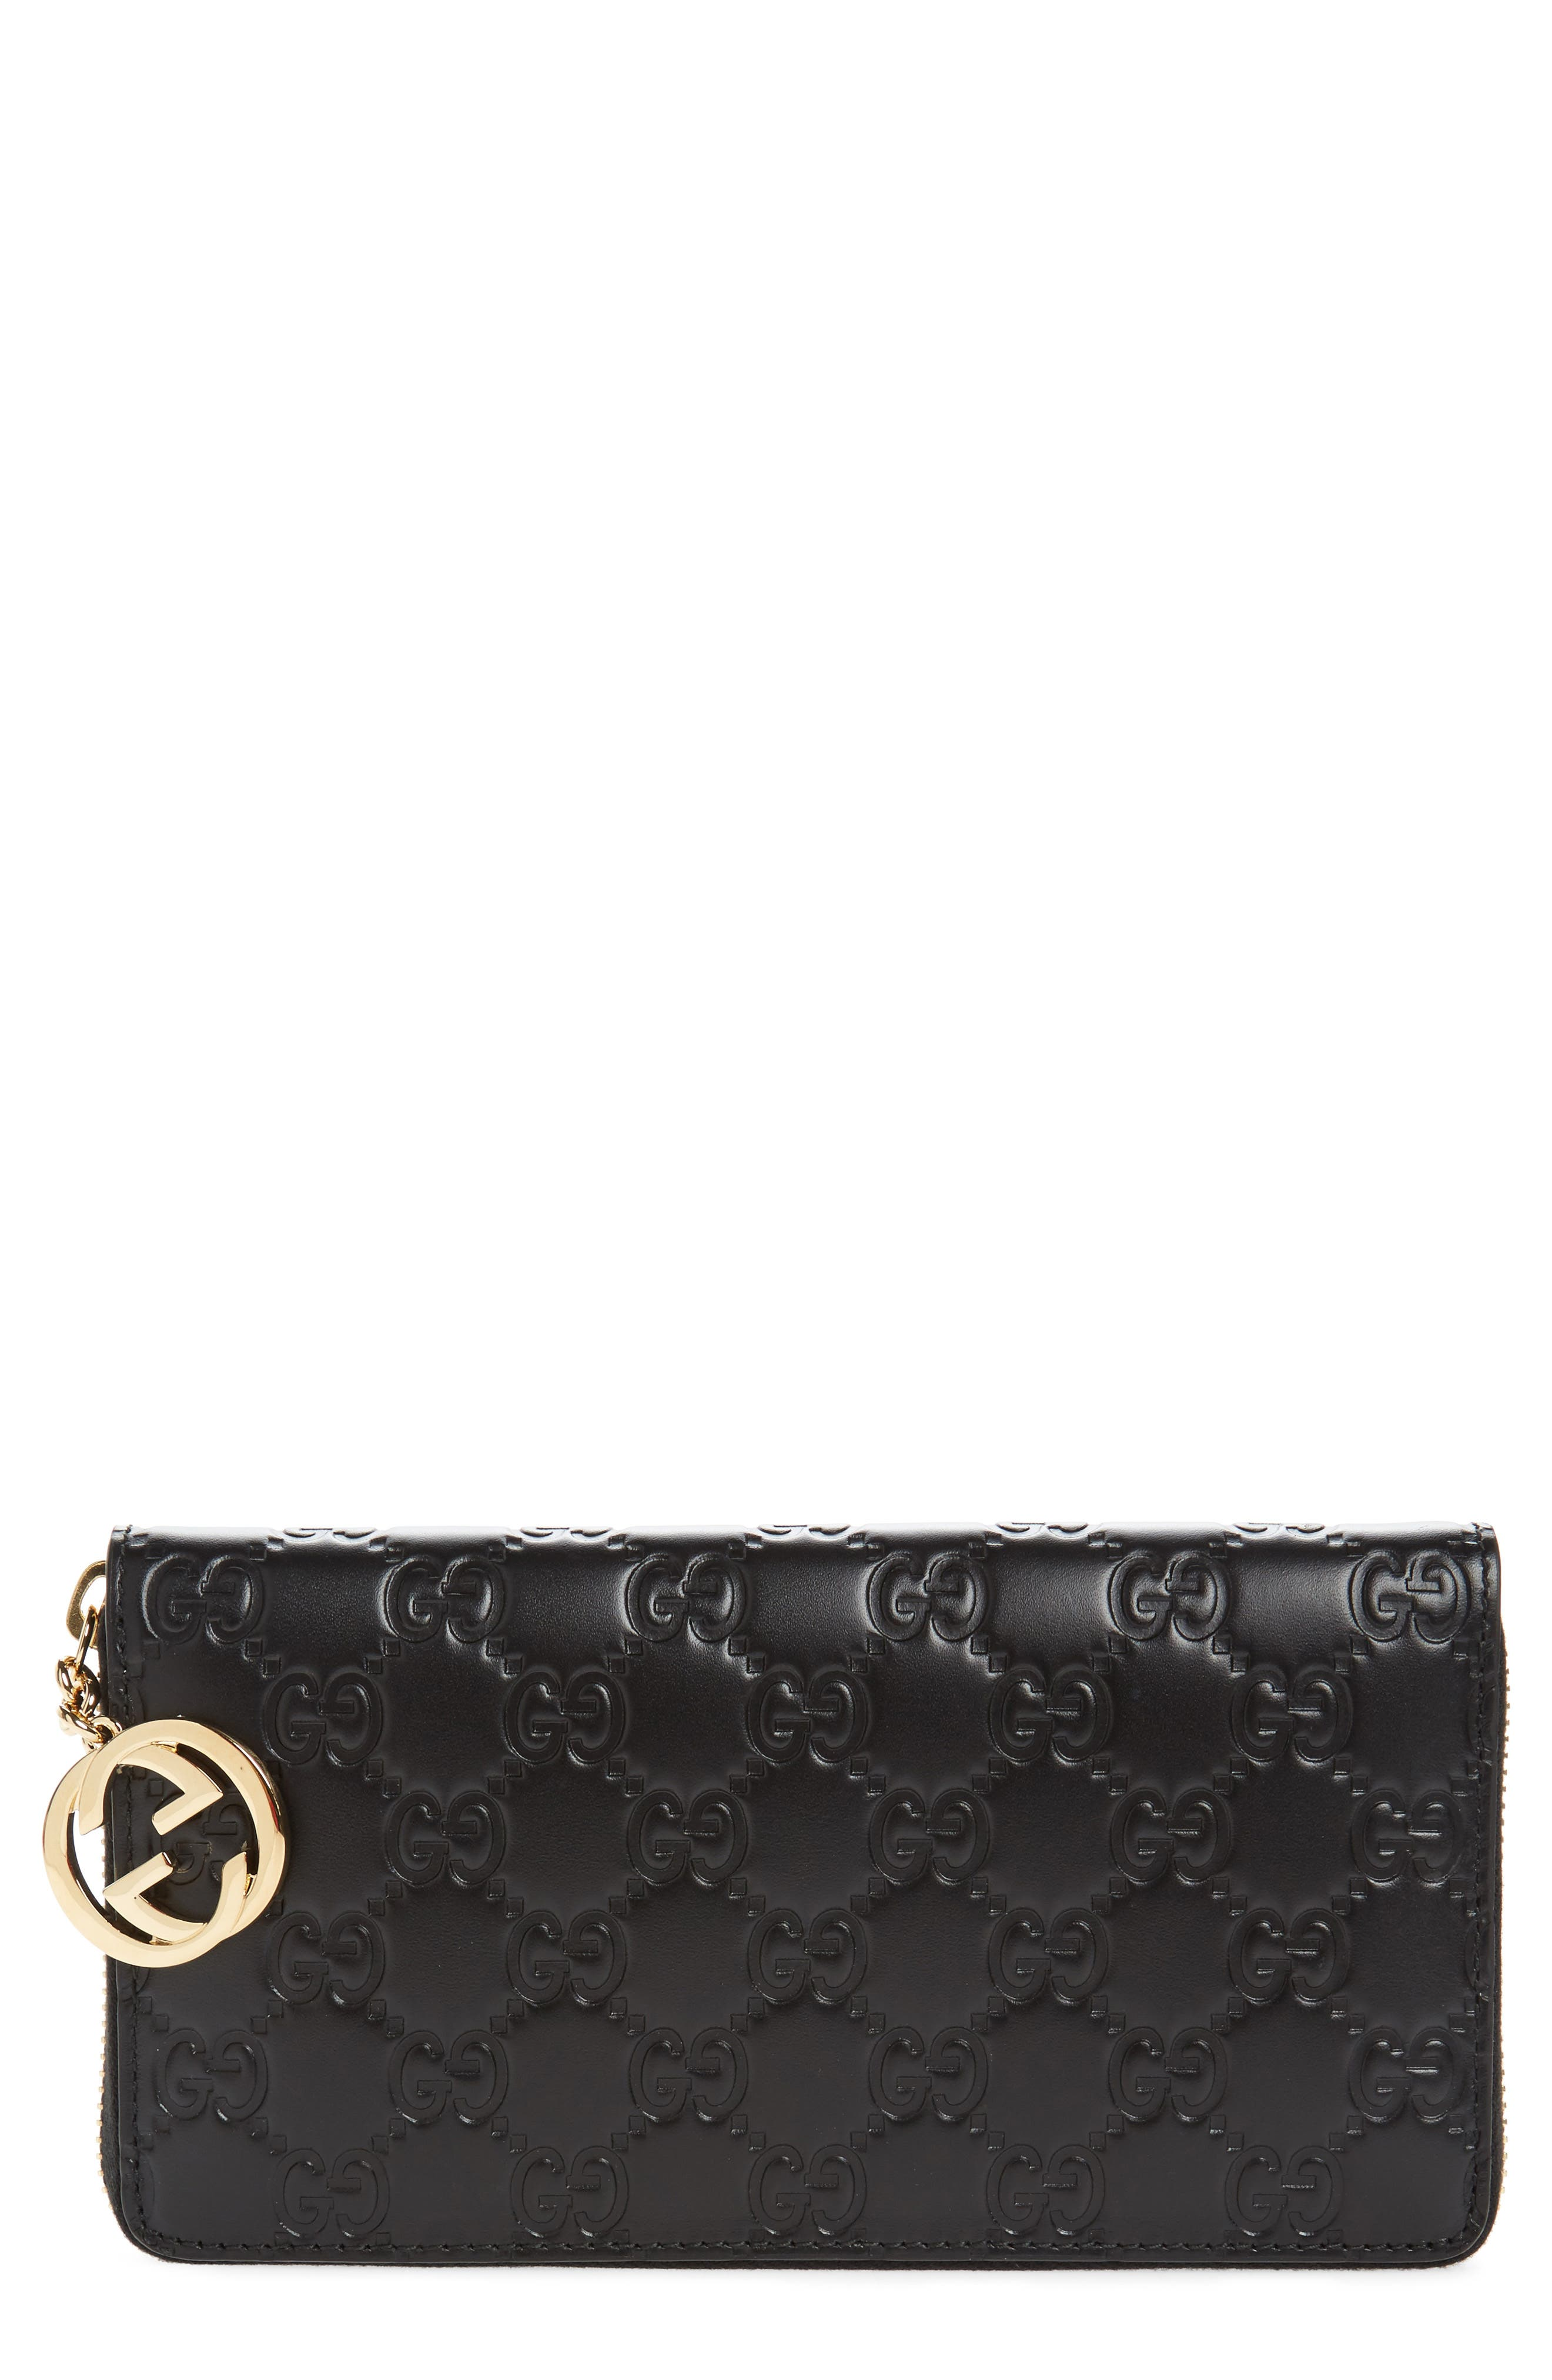 Alternate Image 1 Selected - Gucci Icon Leather Zip-Around Wallet